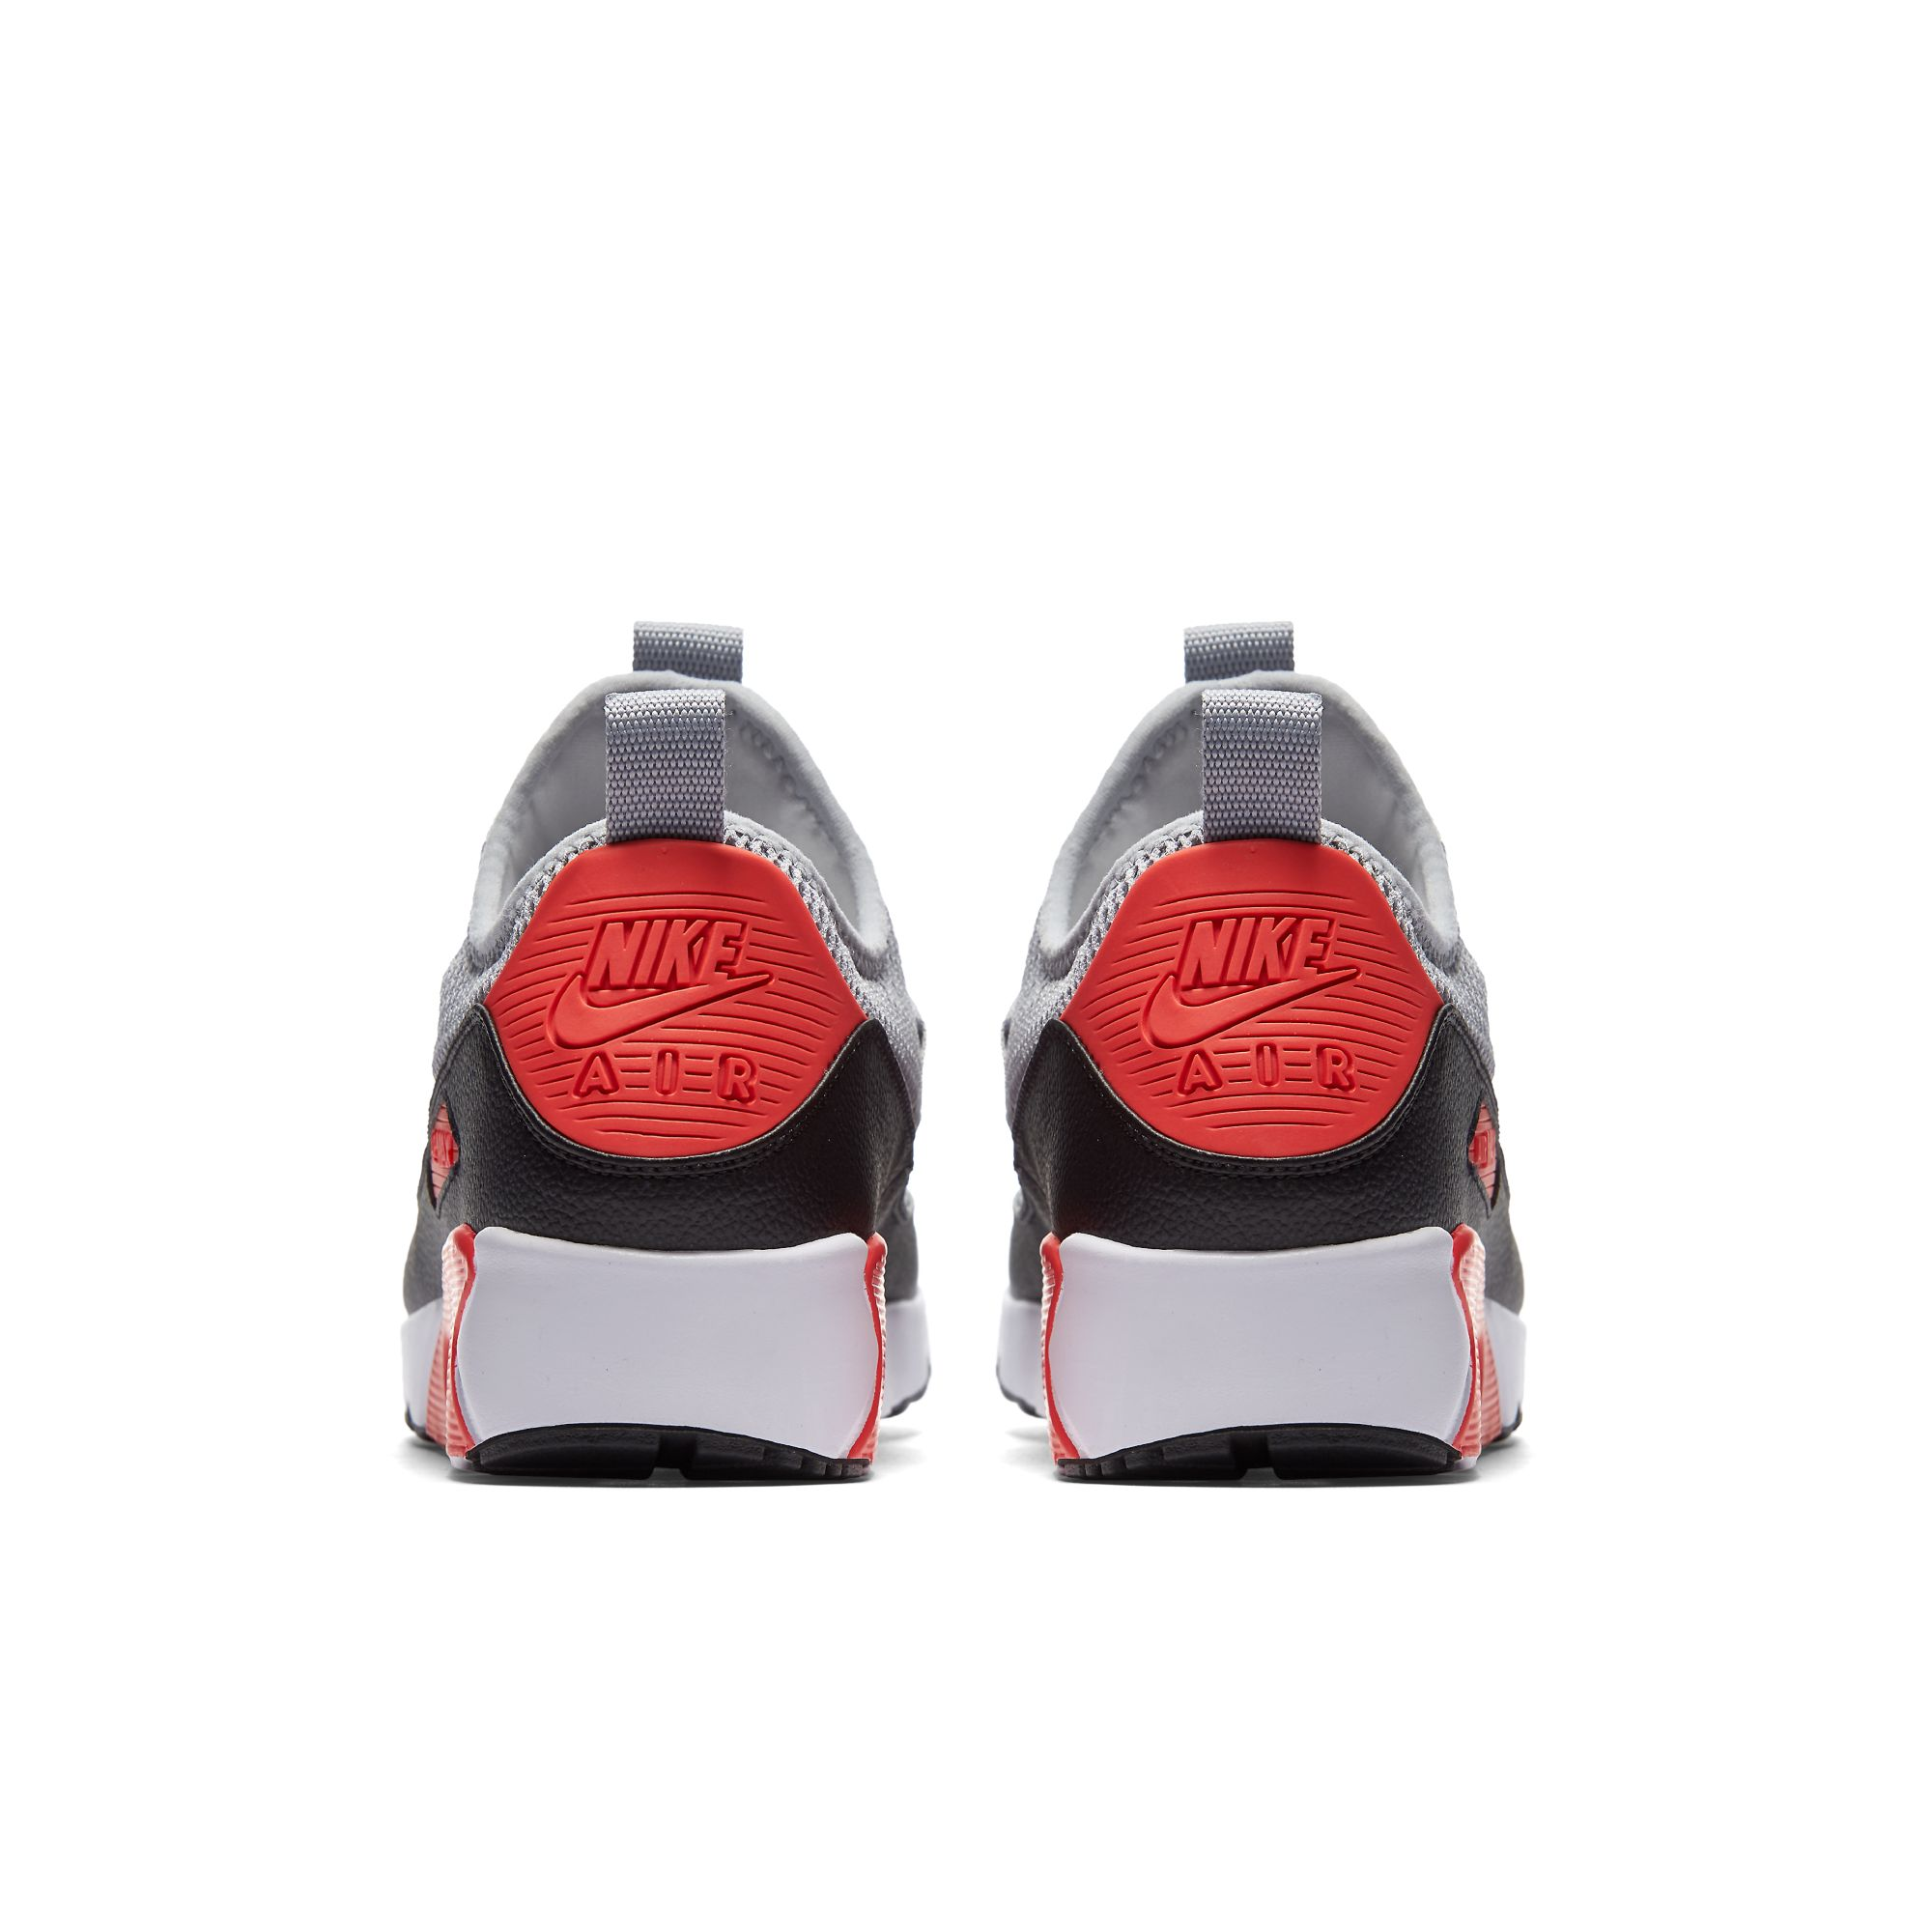 differently c494f f4f7a Slip-on Air Max 90s in Nearly-OG Colorways Arrive for Air ...